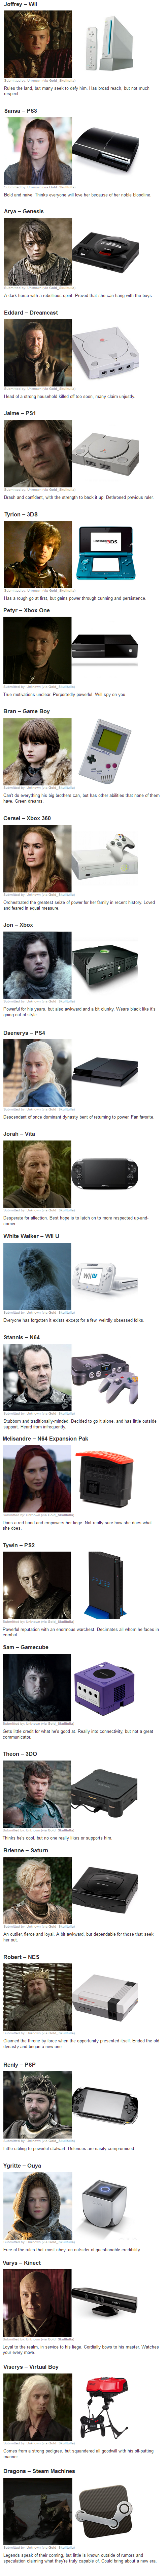 funny-picture-game-of-thrones-consoles